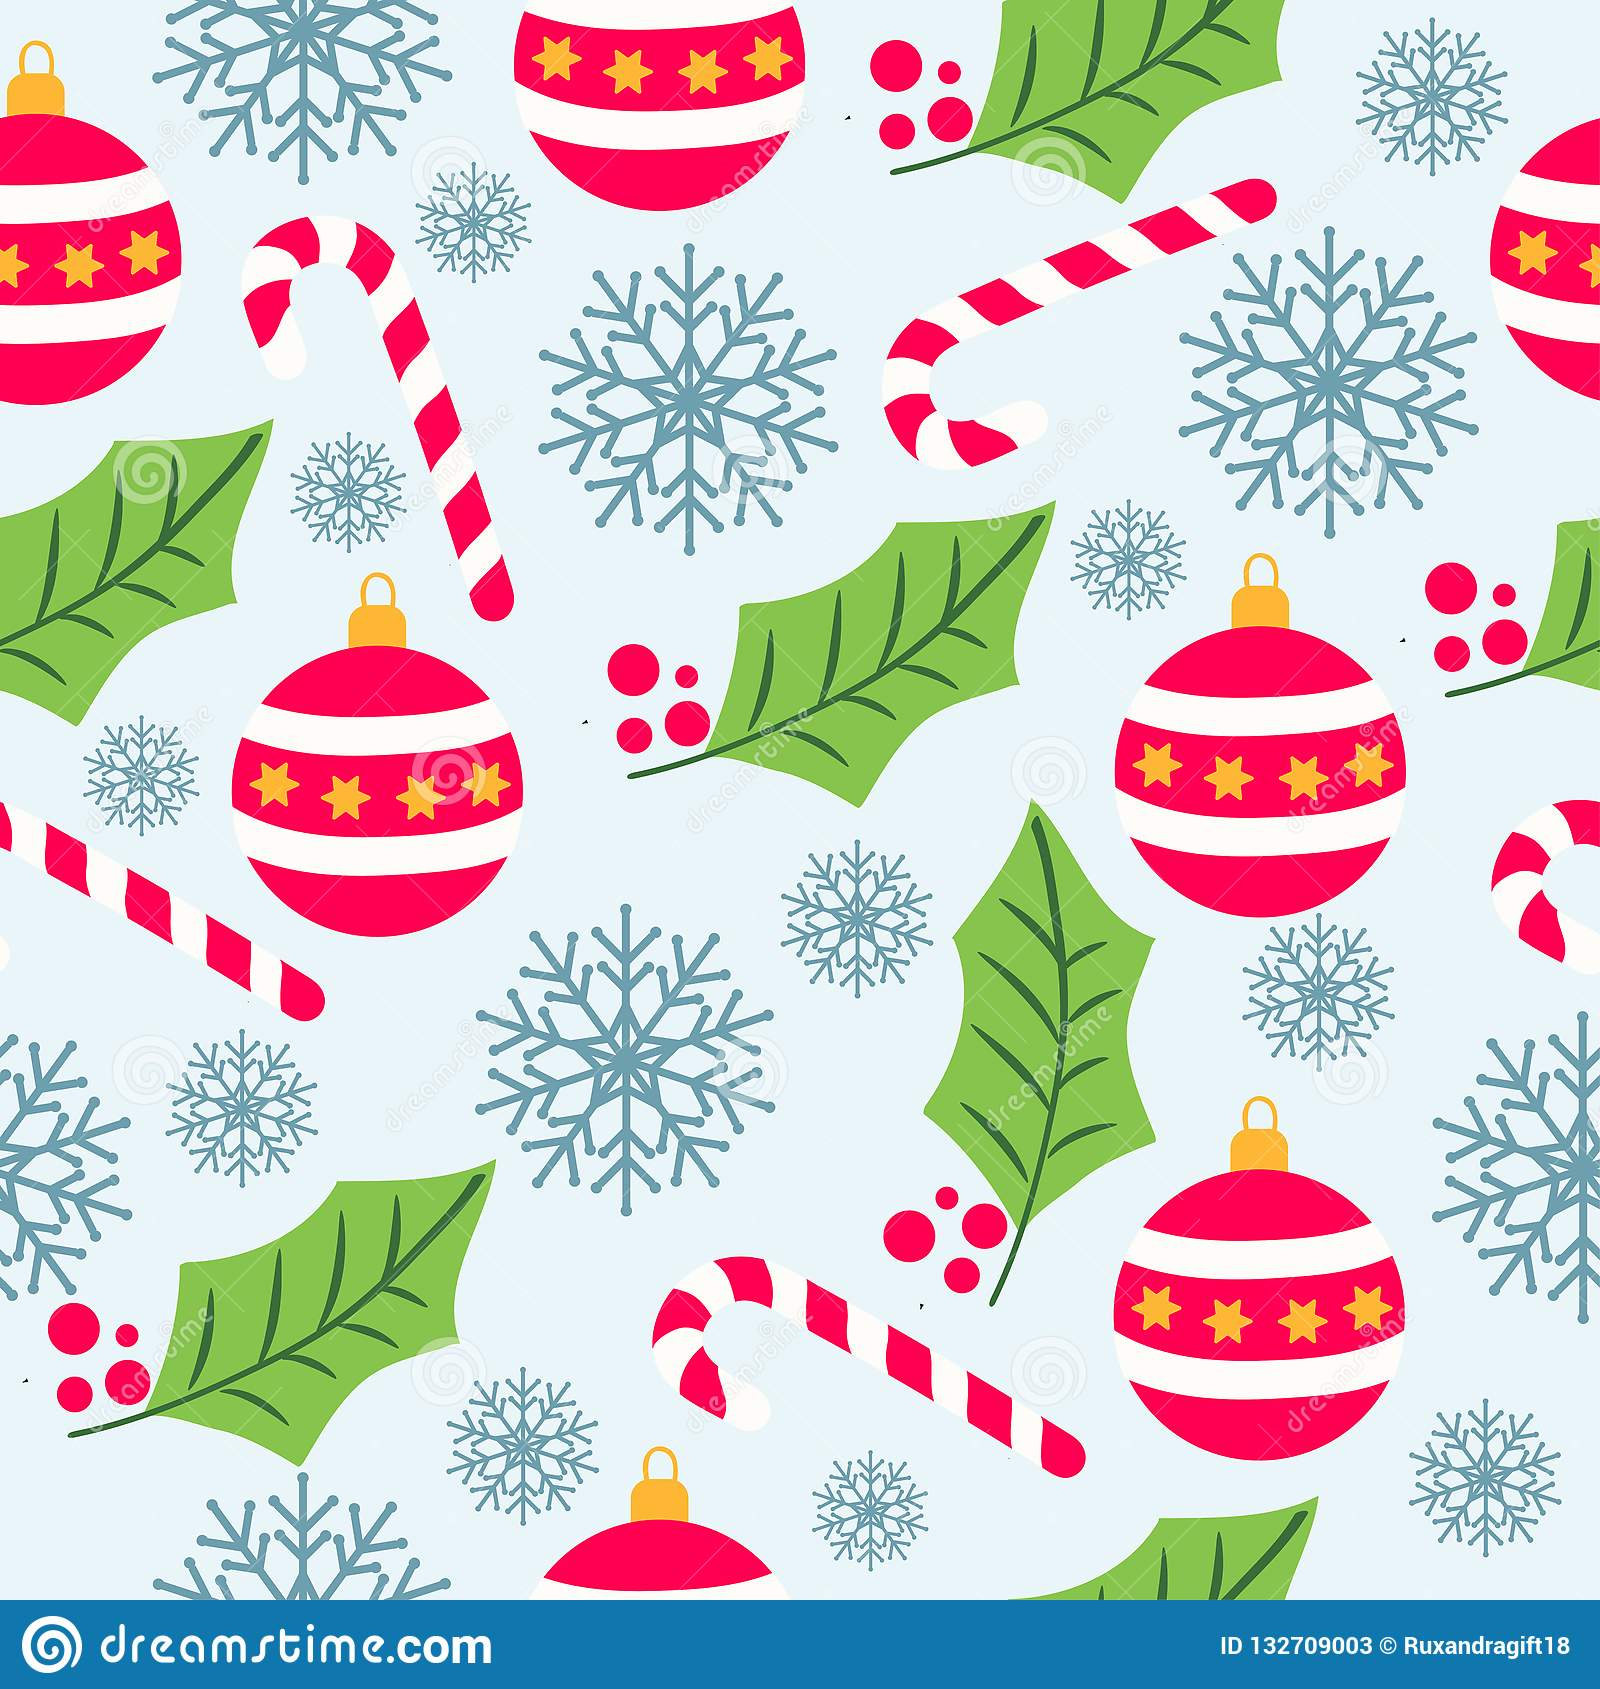 Christmas seamless pattern with Christmas globes, candy canes